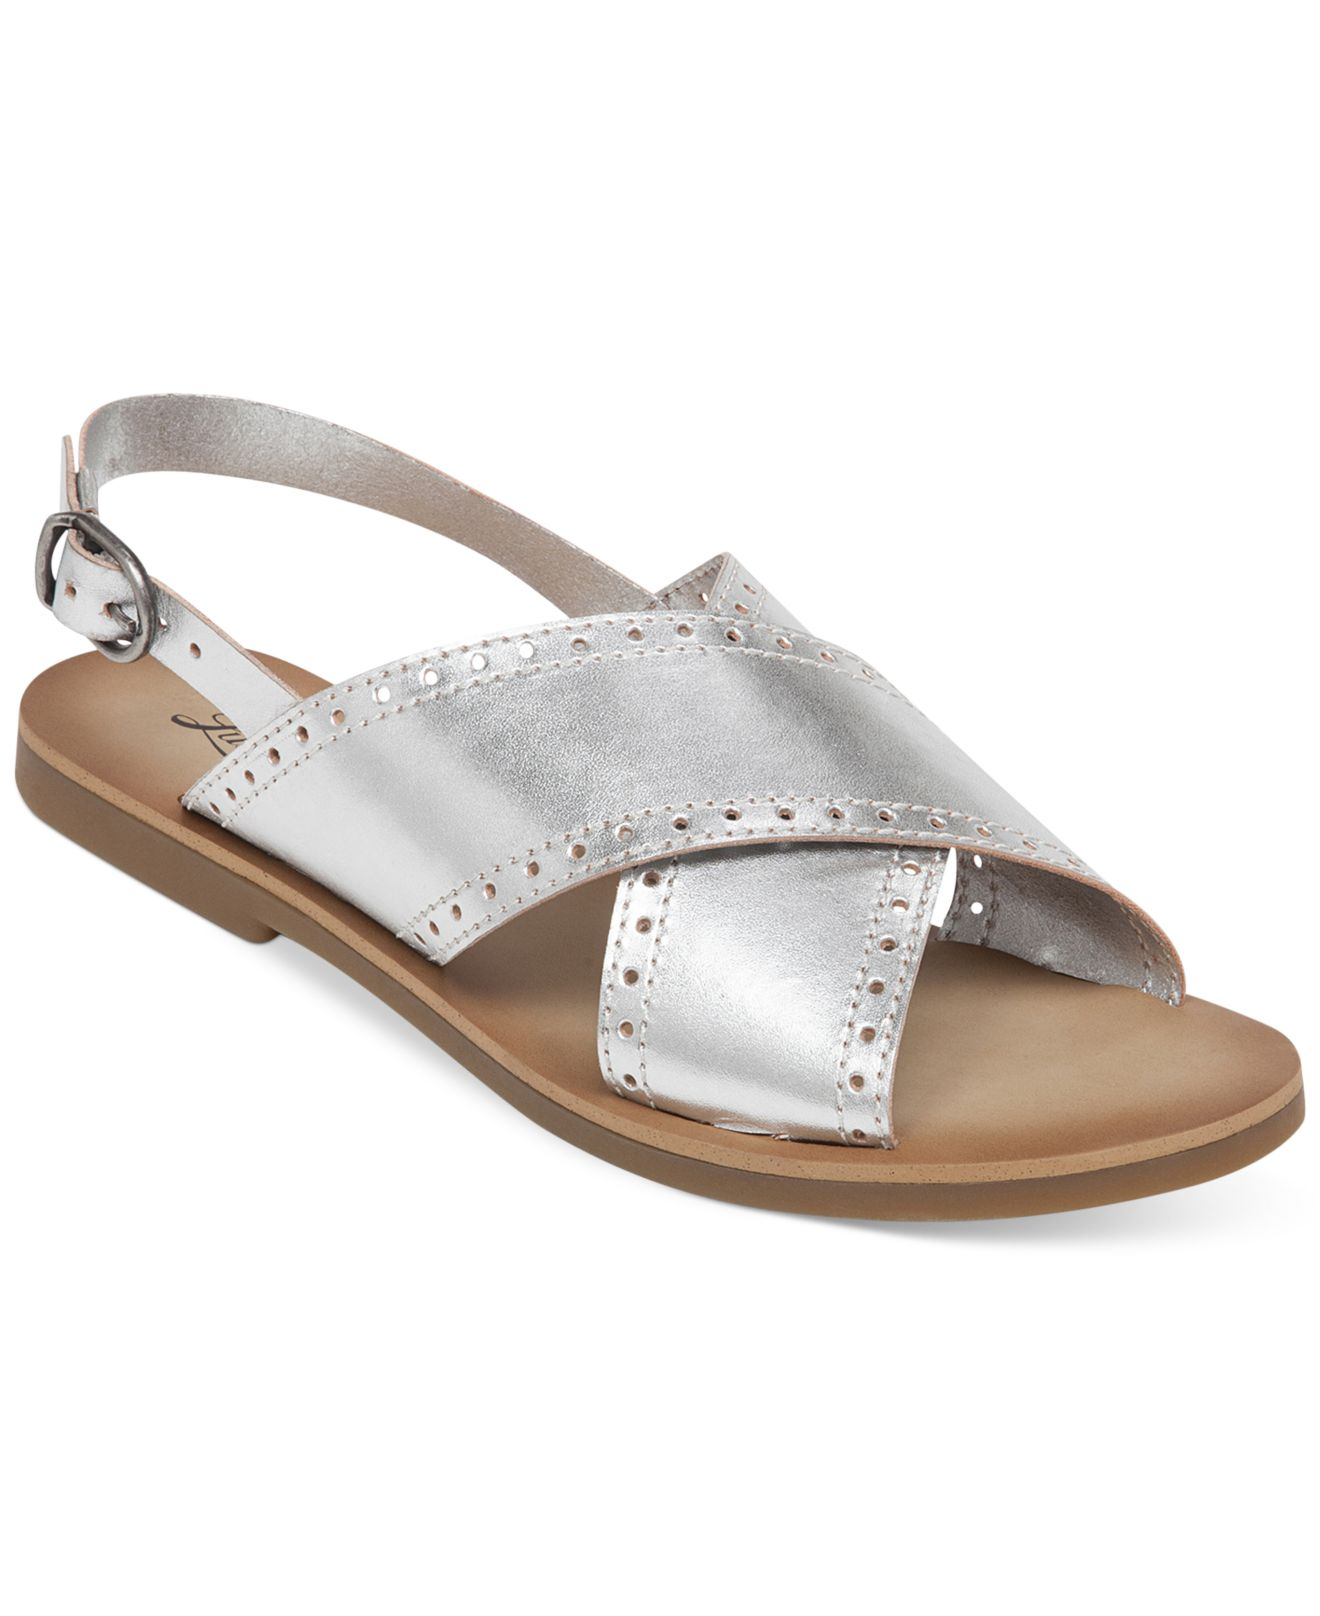 Macy Brand Shoes